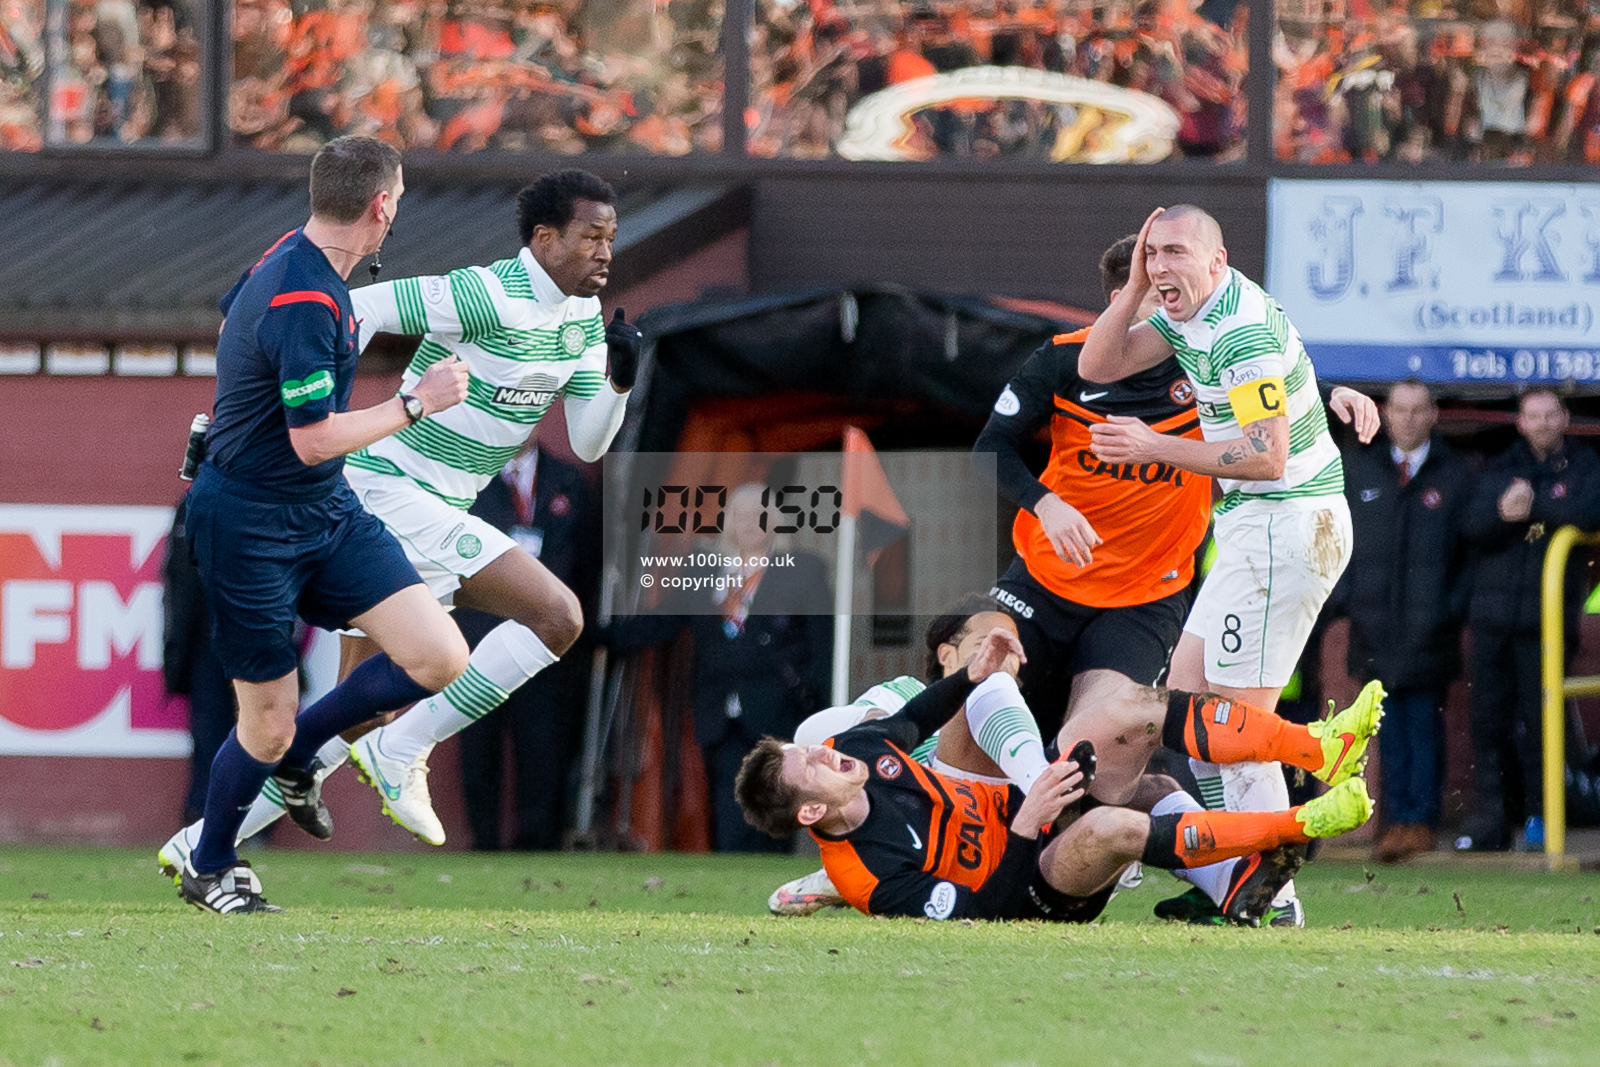 Dundee United v Celtic – 8th March 2015